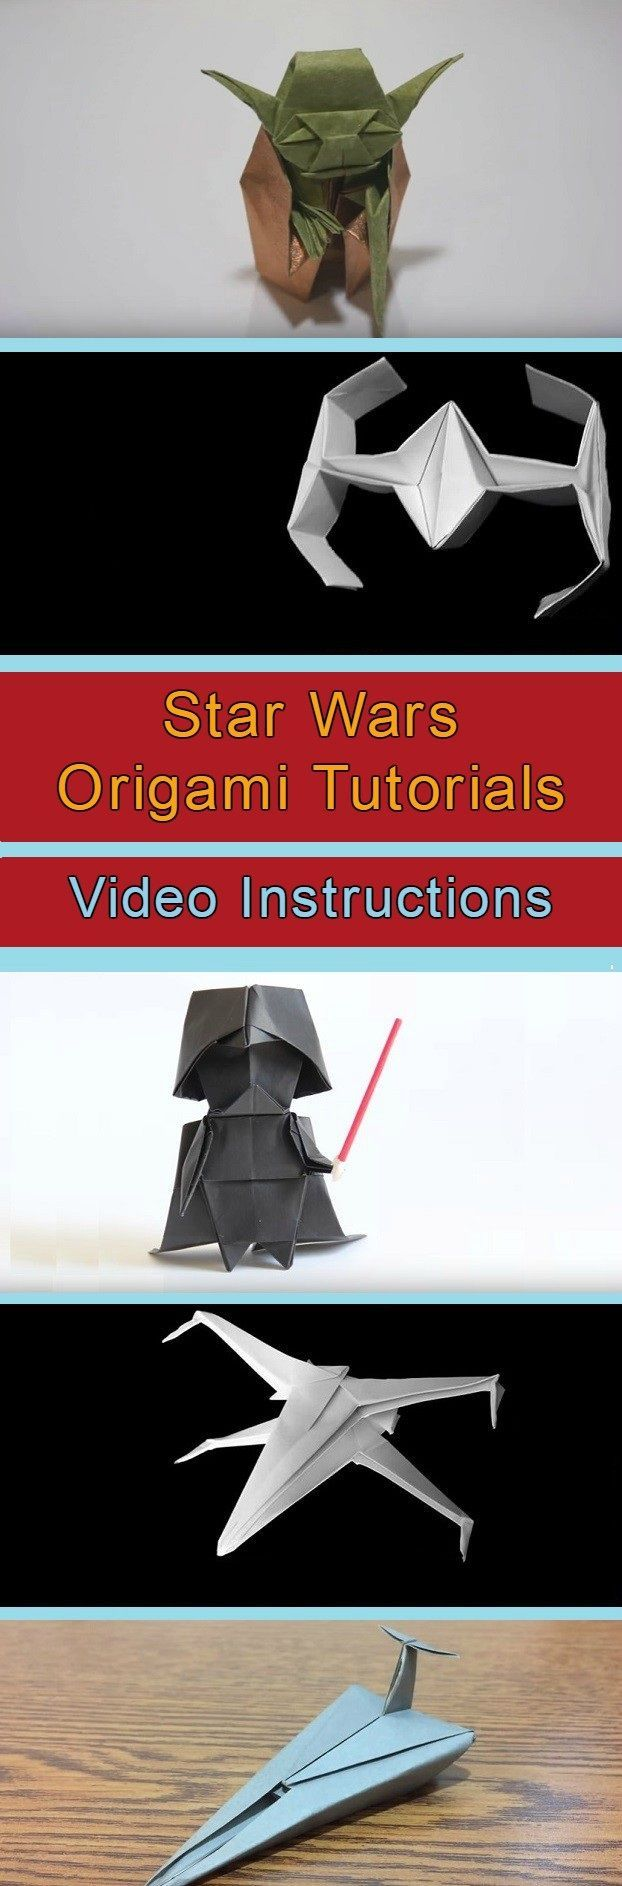 star wars origami tutorials video instr… | petits papiers